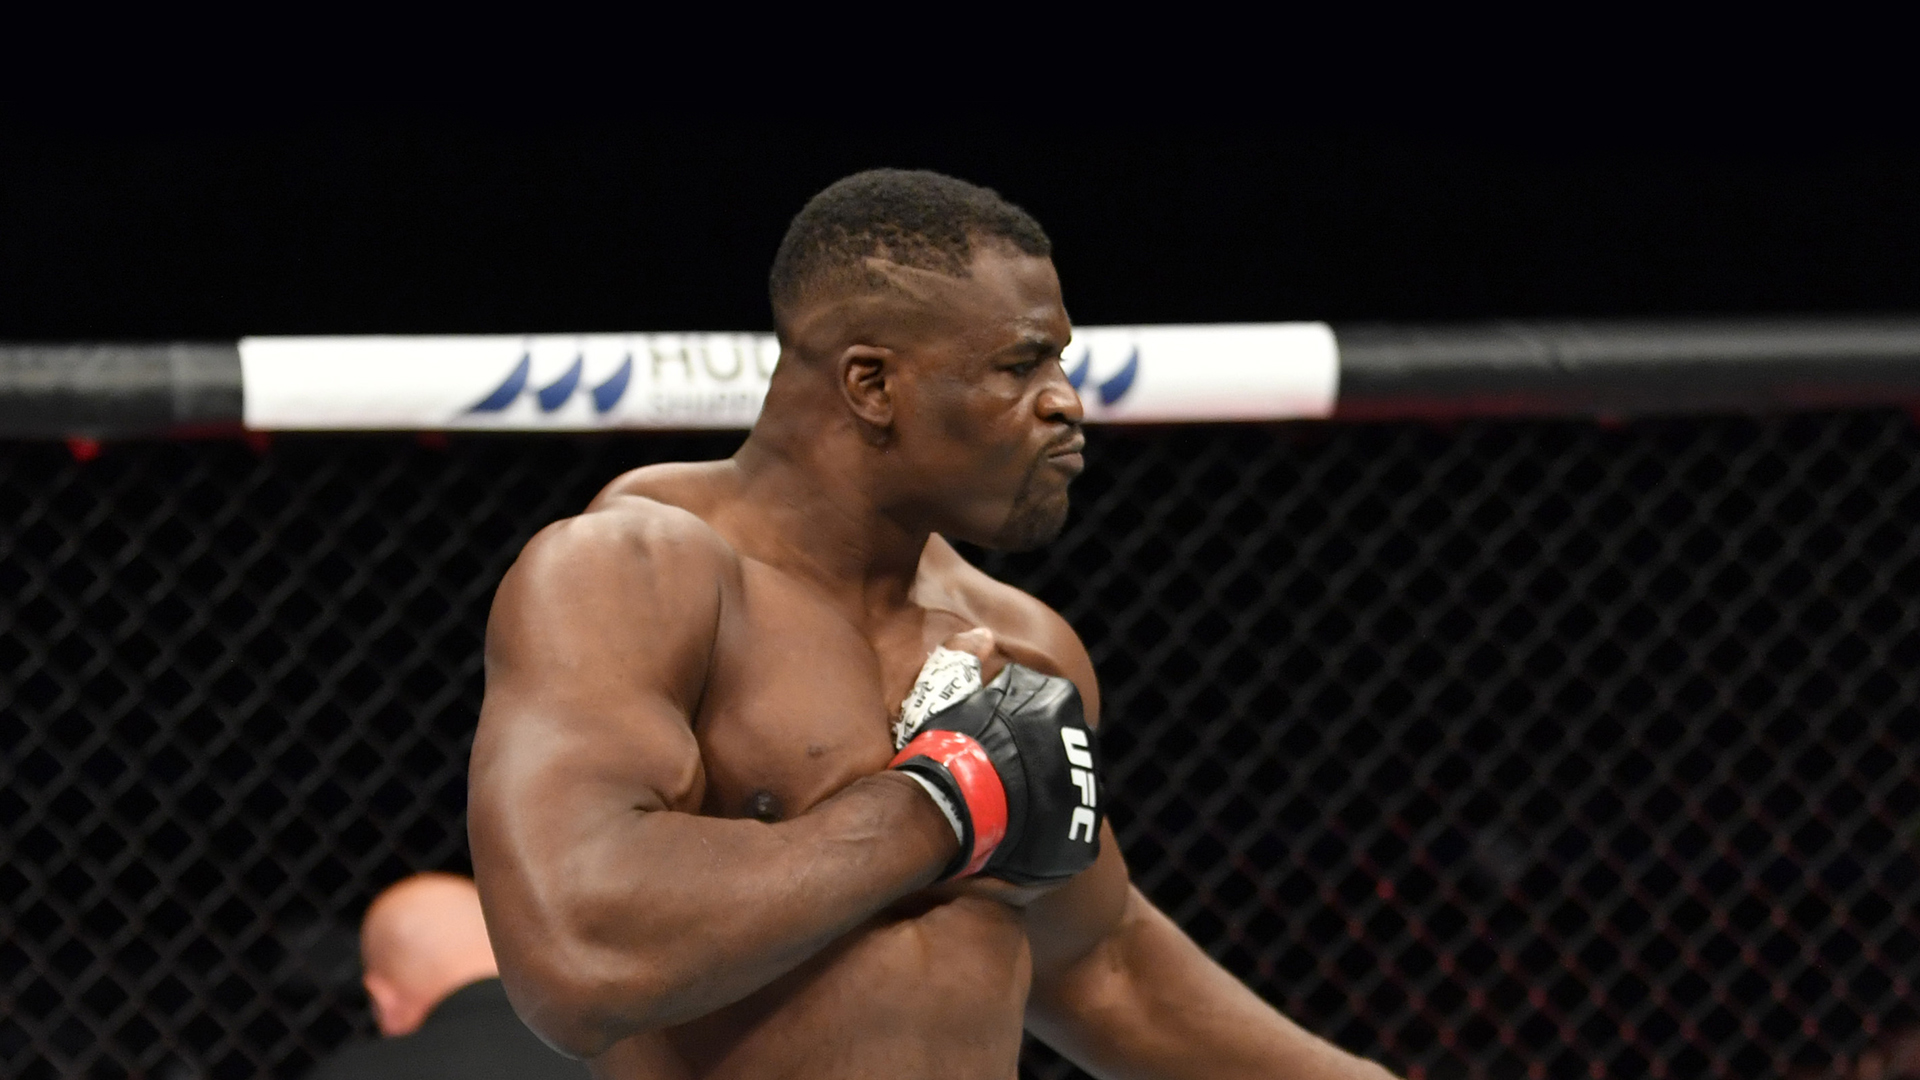 Francis Ngannou of Cameroon celebrates after his knockout victory over Jairzinho Rozenstruik of Suriname in their heavyweight fight during the UFC 249 event at VyStar Veterans Memorial Arena on May 09, 2020 in Jacksonville, Florida. (Photo by Jeff Bottari/Zuffa LLC)